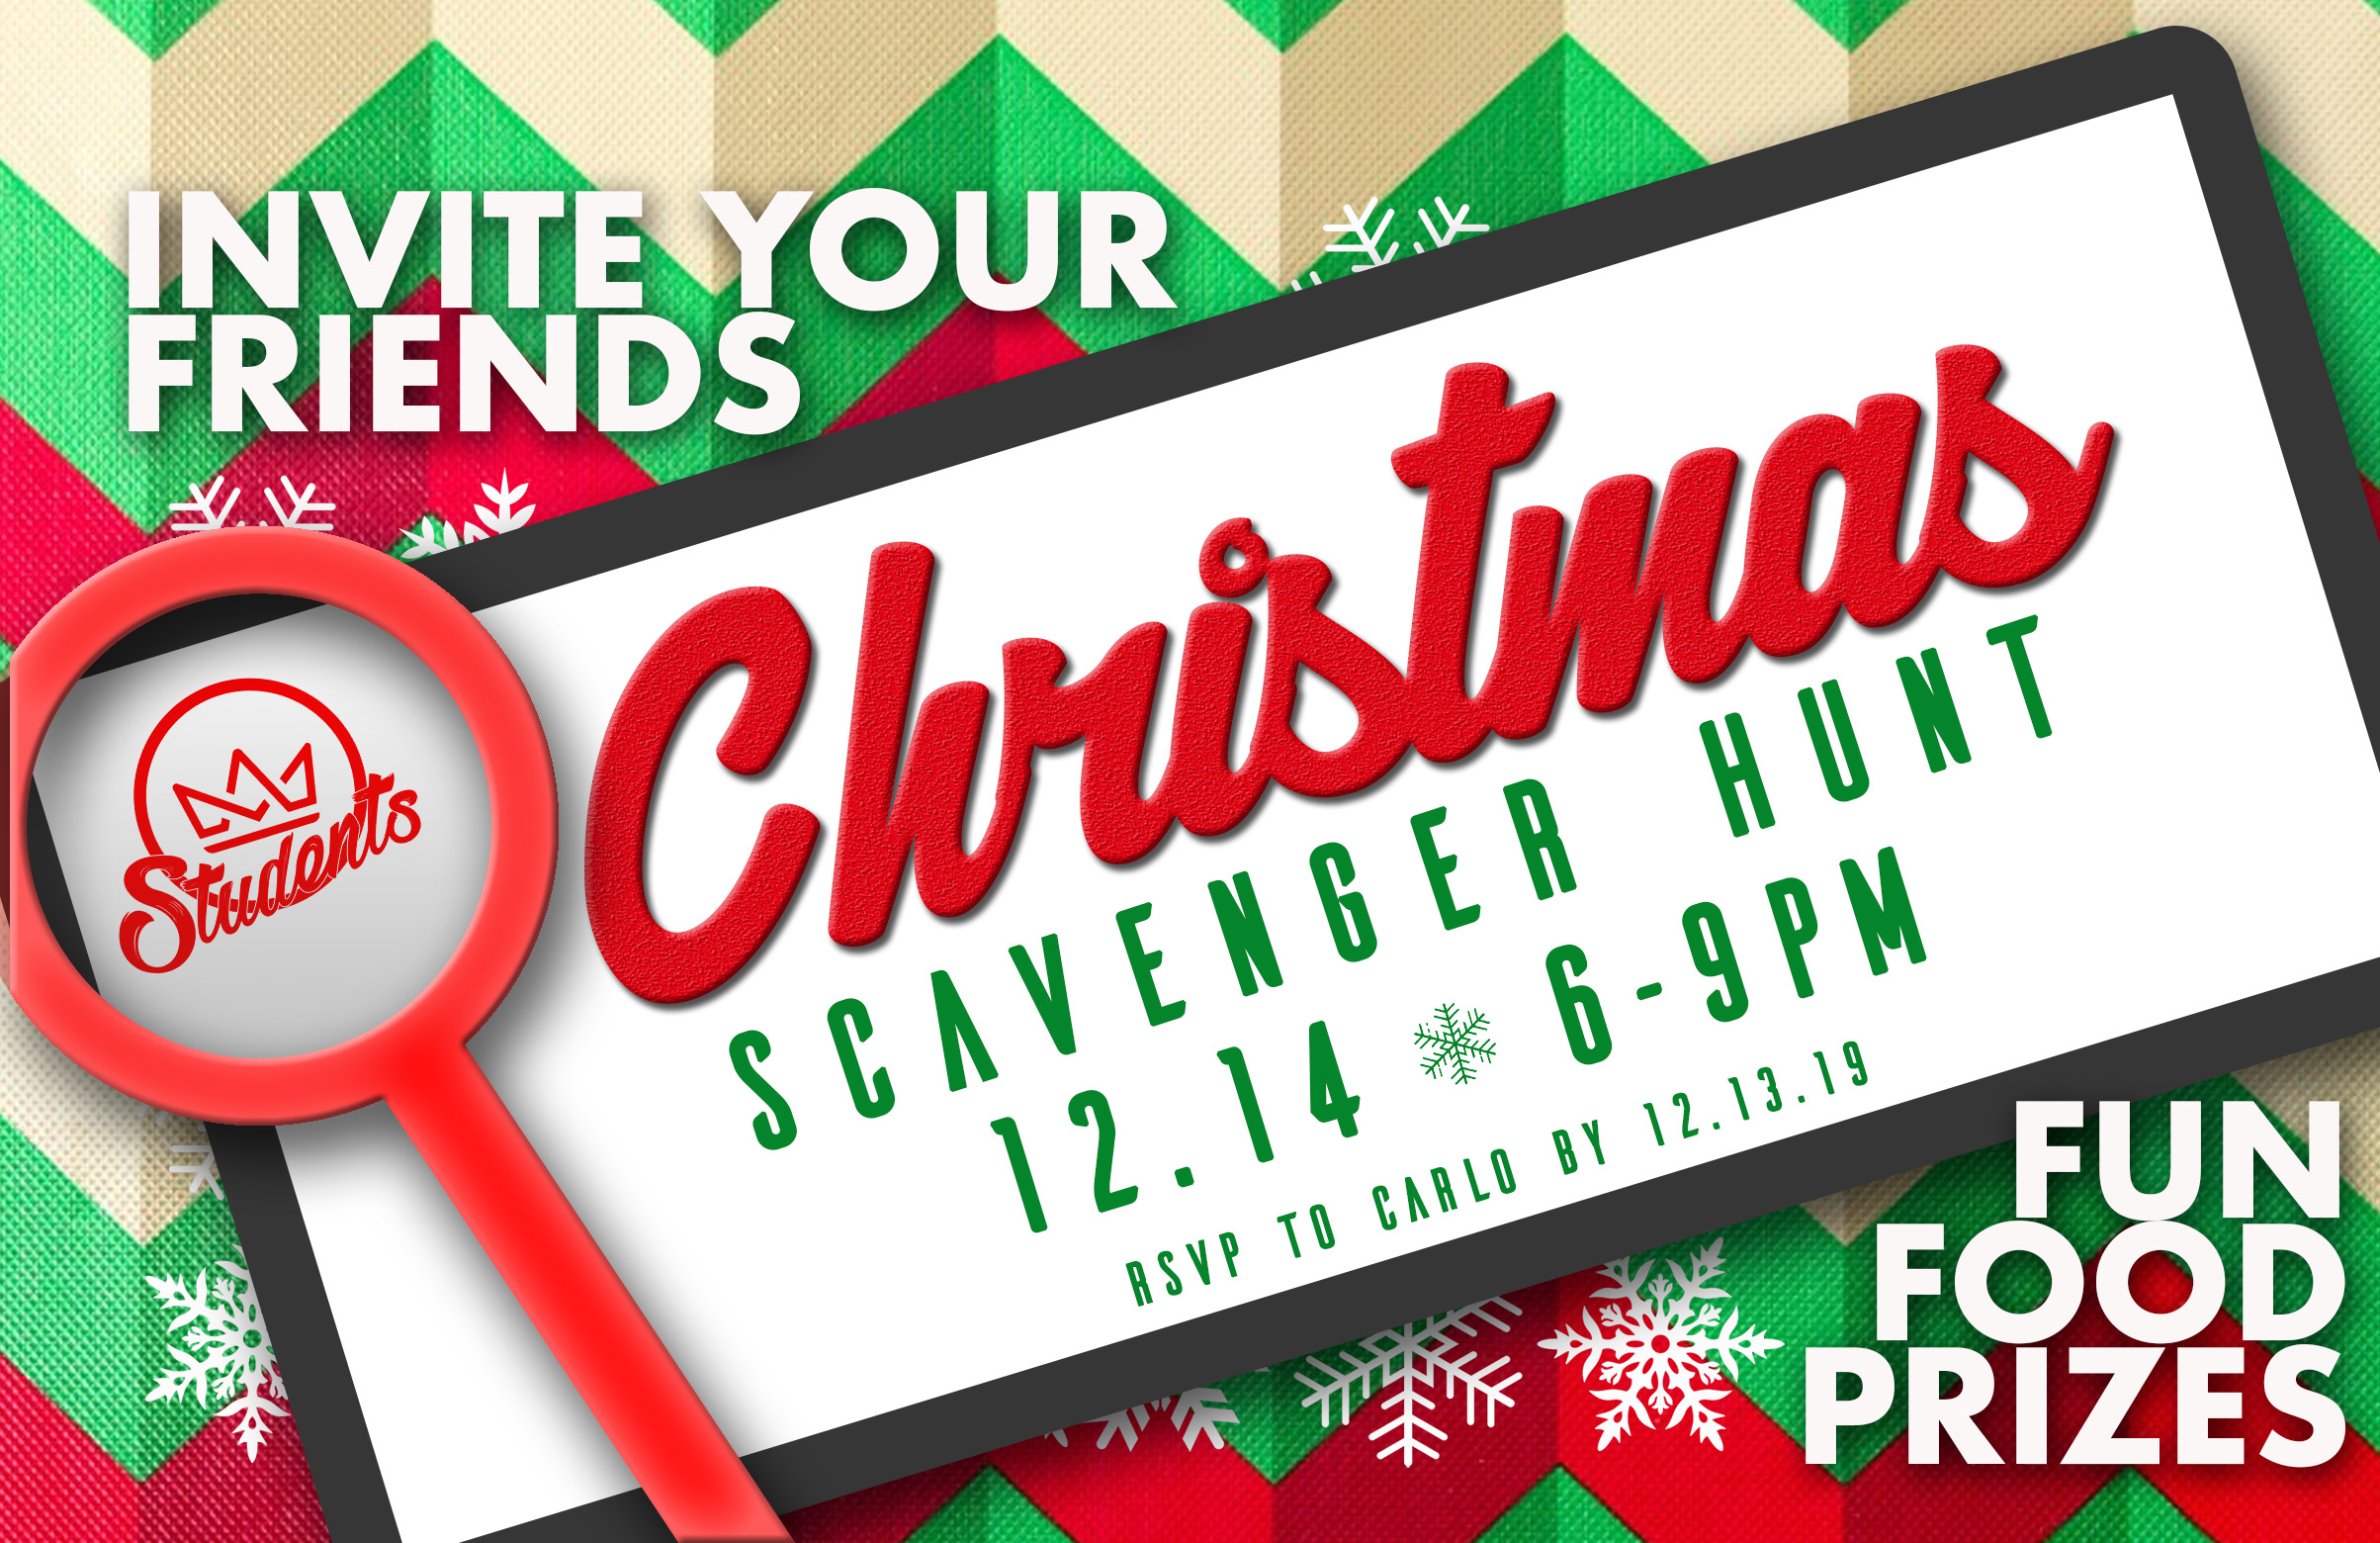 Paseo Students Christmas Scavenger Hunt website